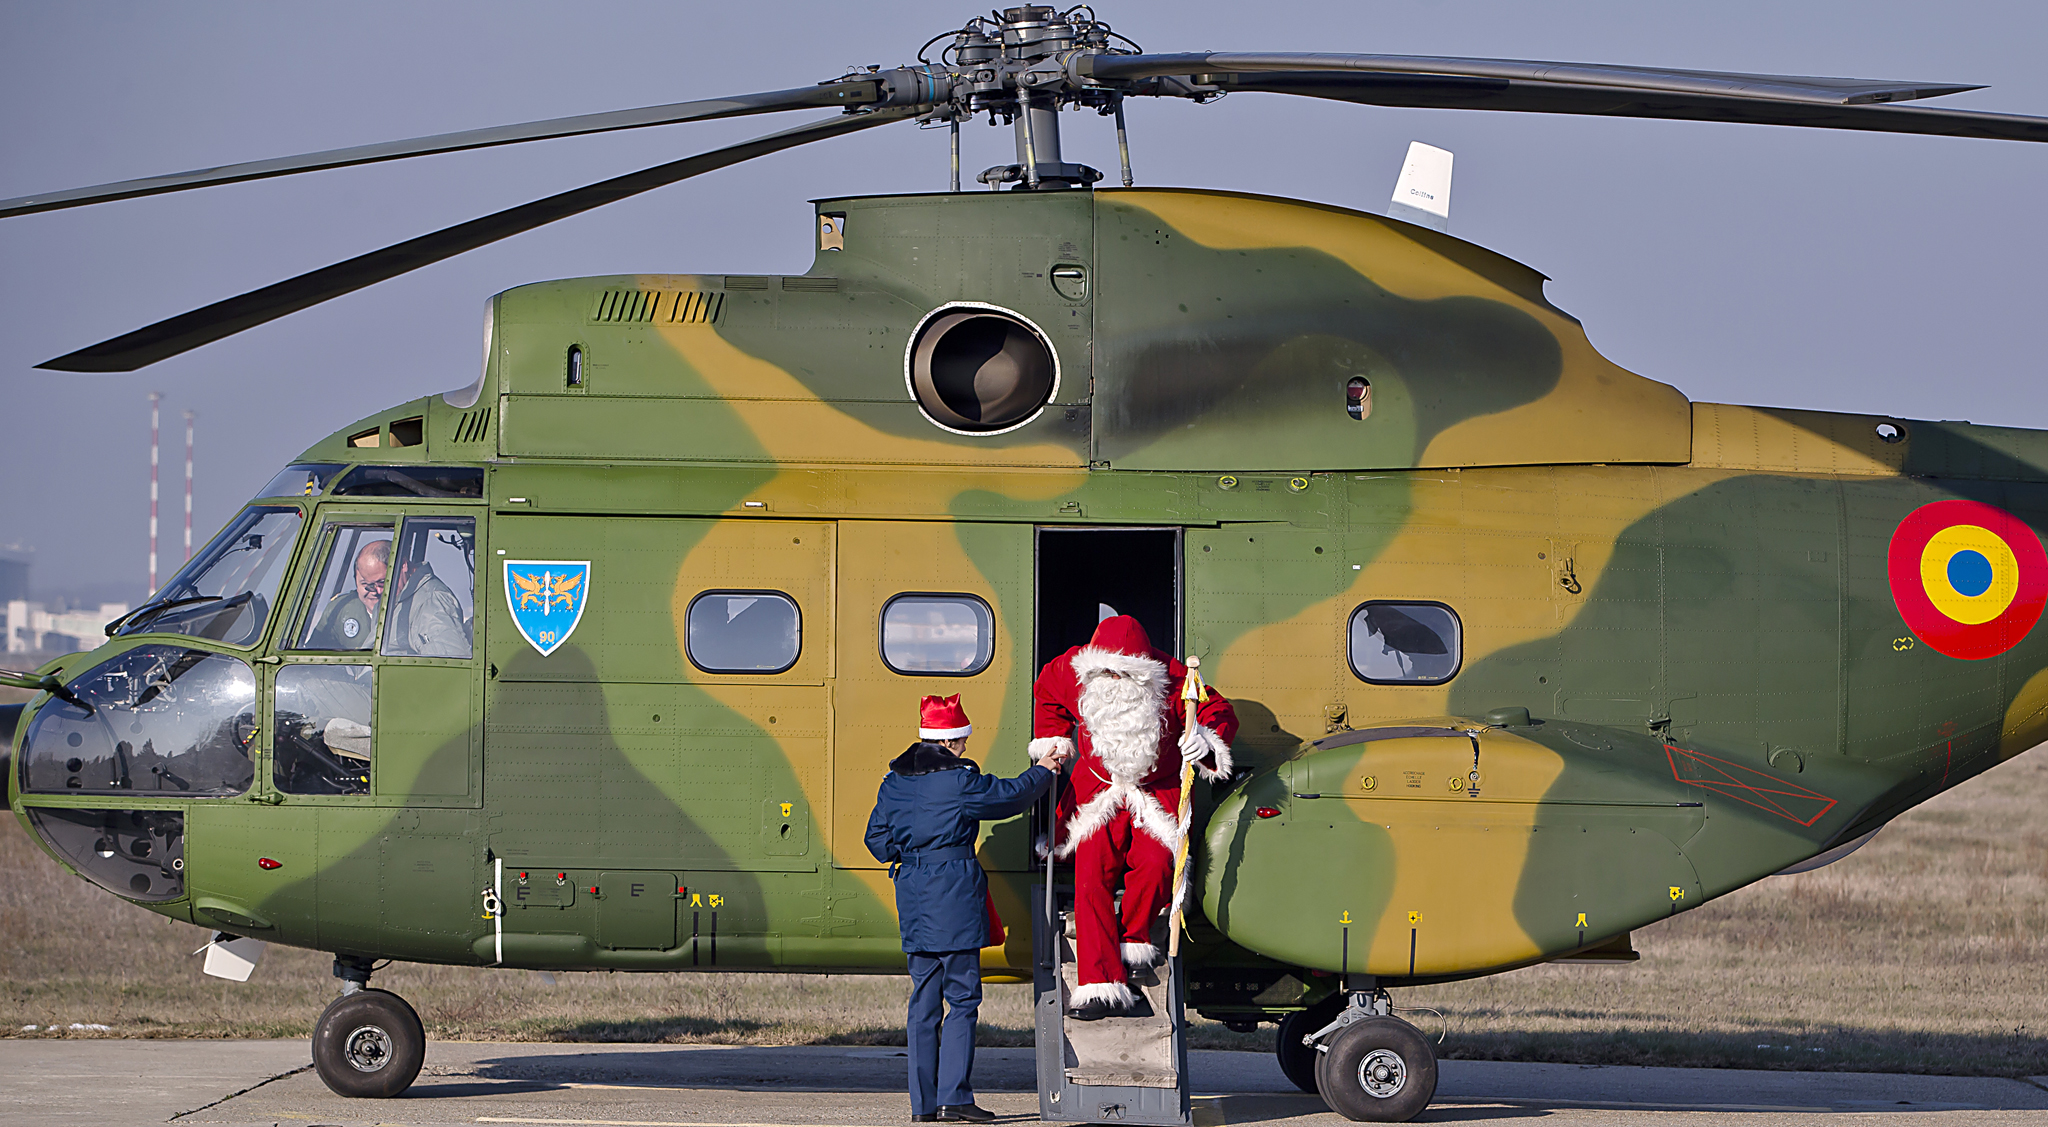 A man wearing a Santa Claus outfit receives help to exit a helicopter at the Romanian Airforce Base 90 in Otopeni, outside Bucharest, Romania, Tuesday, Dec. 17, 2013. Santa arrived on a Puma helicopter and distributed gifts to the children of the Romanian air force personnel .